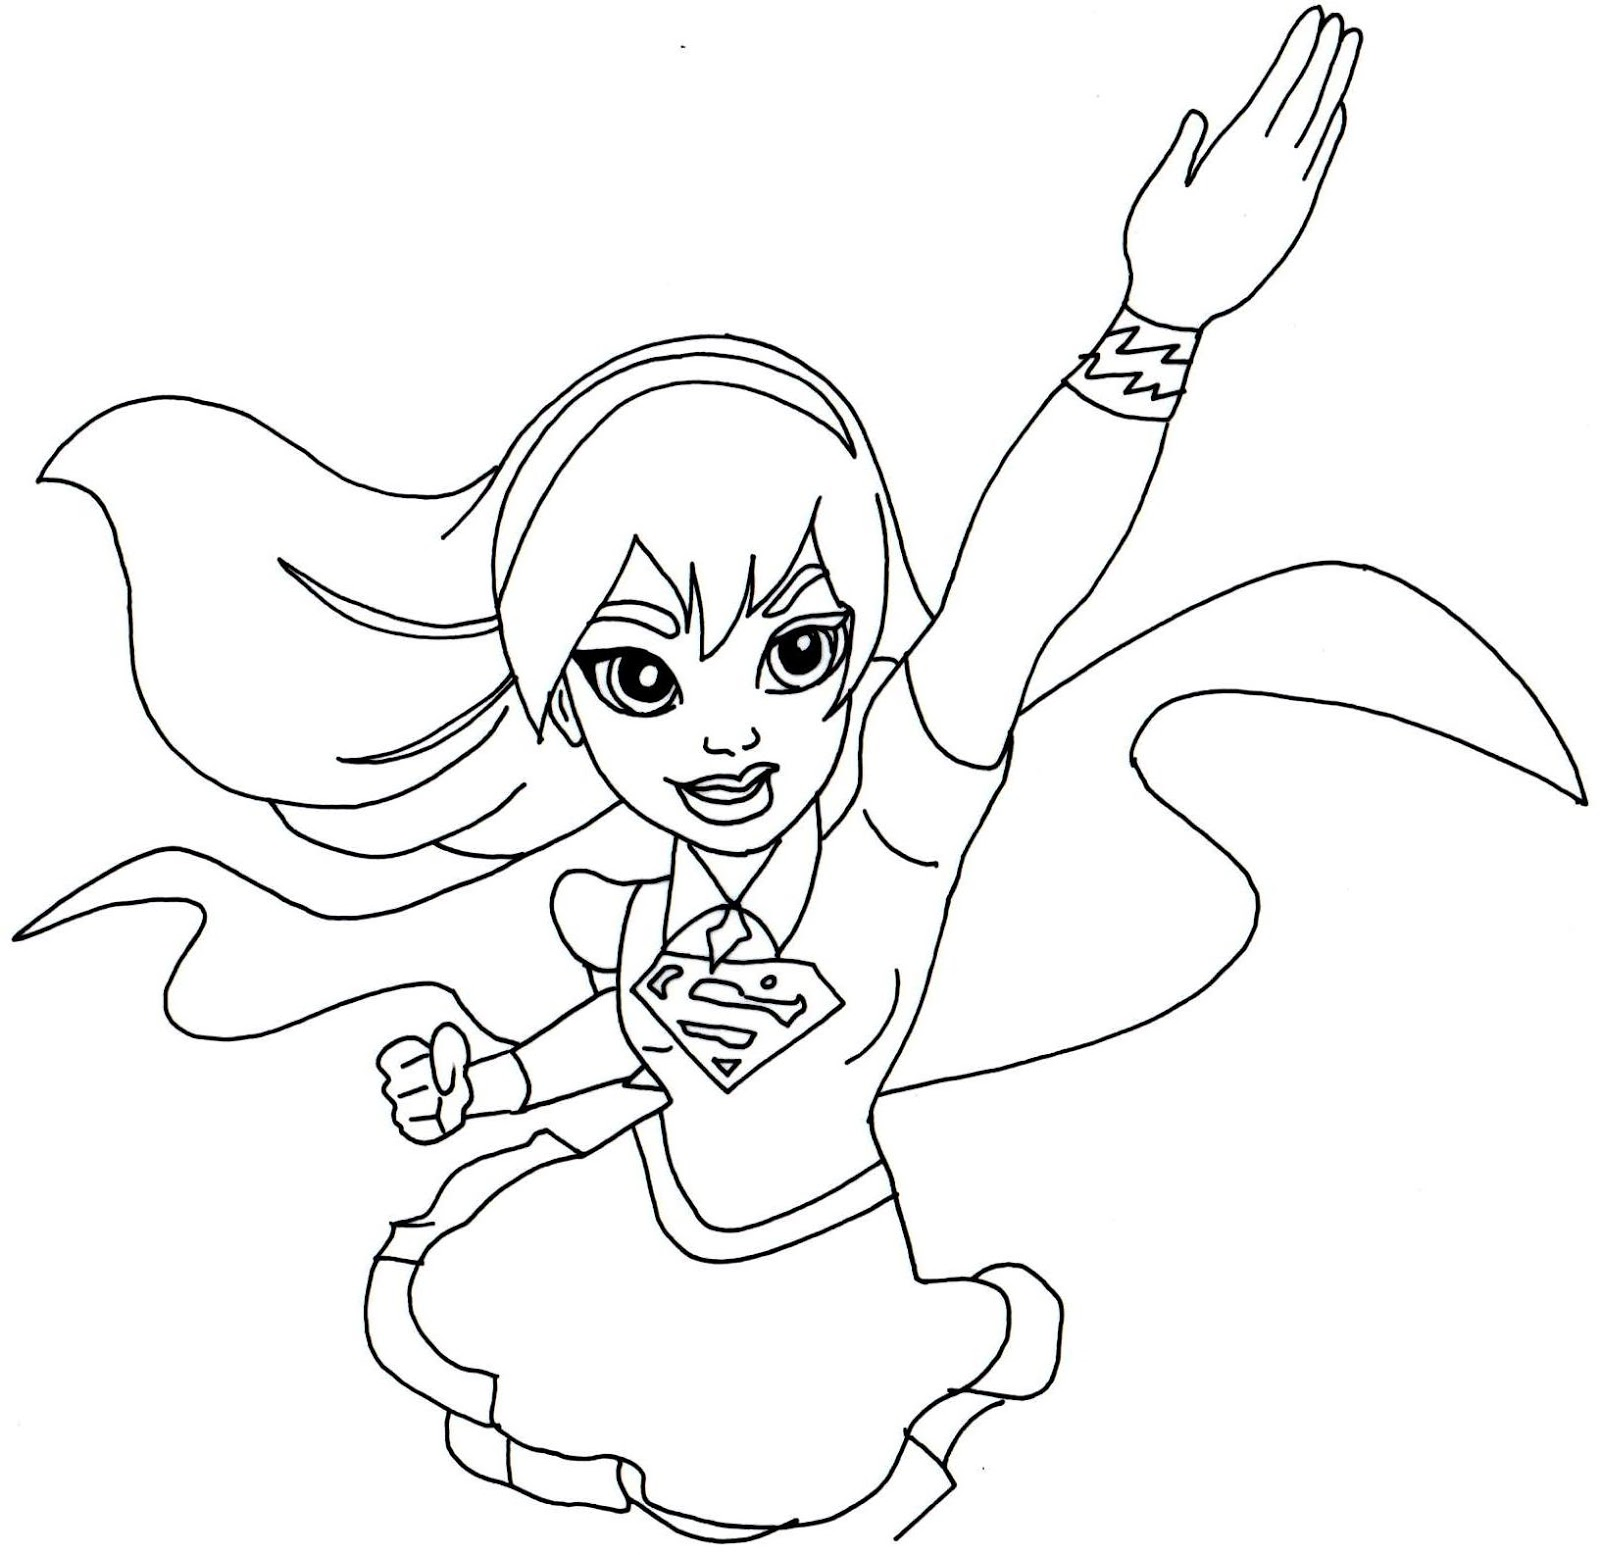 Free printable super hero high coloring pages supergirl for Girl superheroes coloring pages